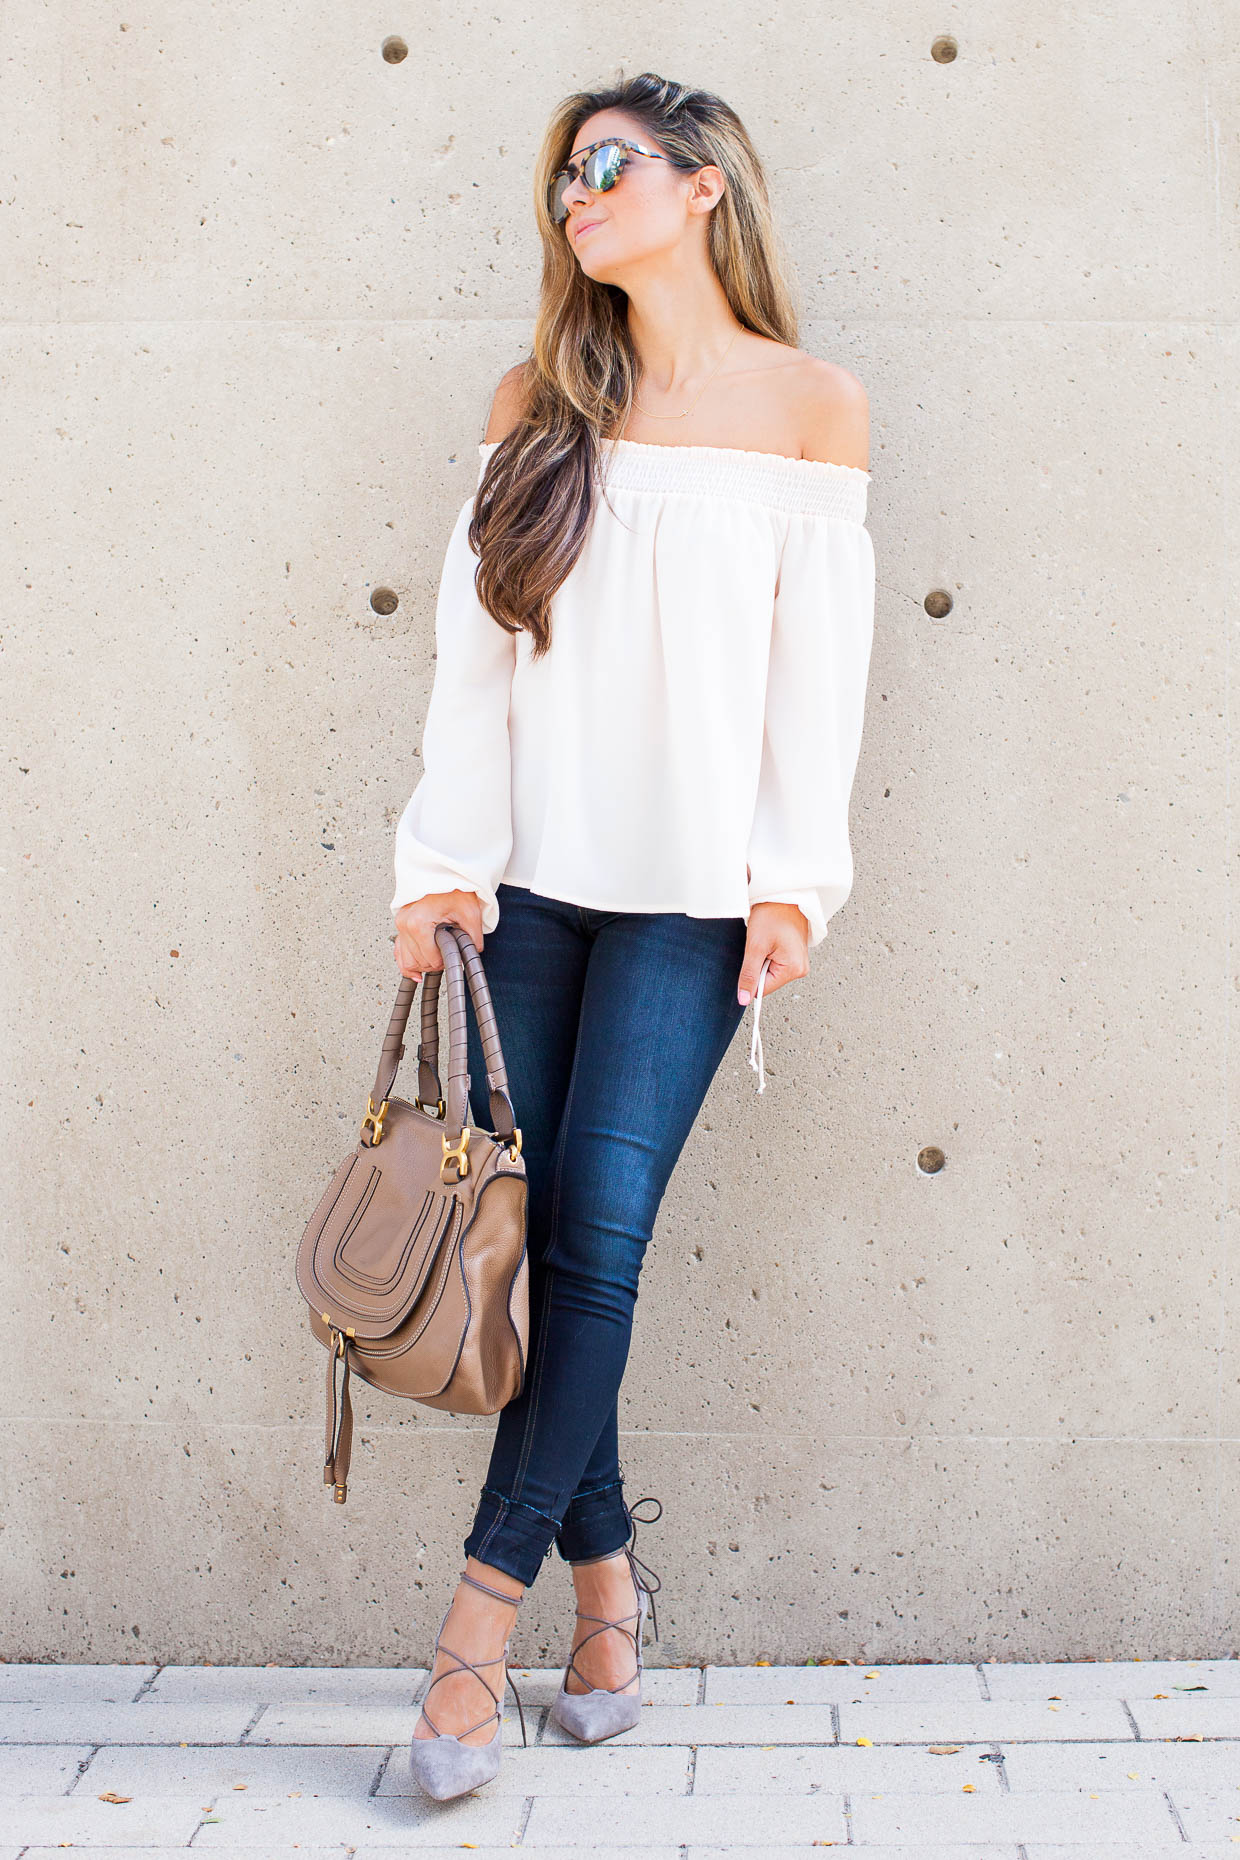 f0c041ce9509 ... Fashion Blogger The Darling Detail is wearing a Chelsea28 Off the  Shoulder Top and rag ...